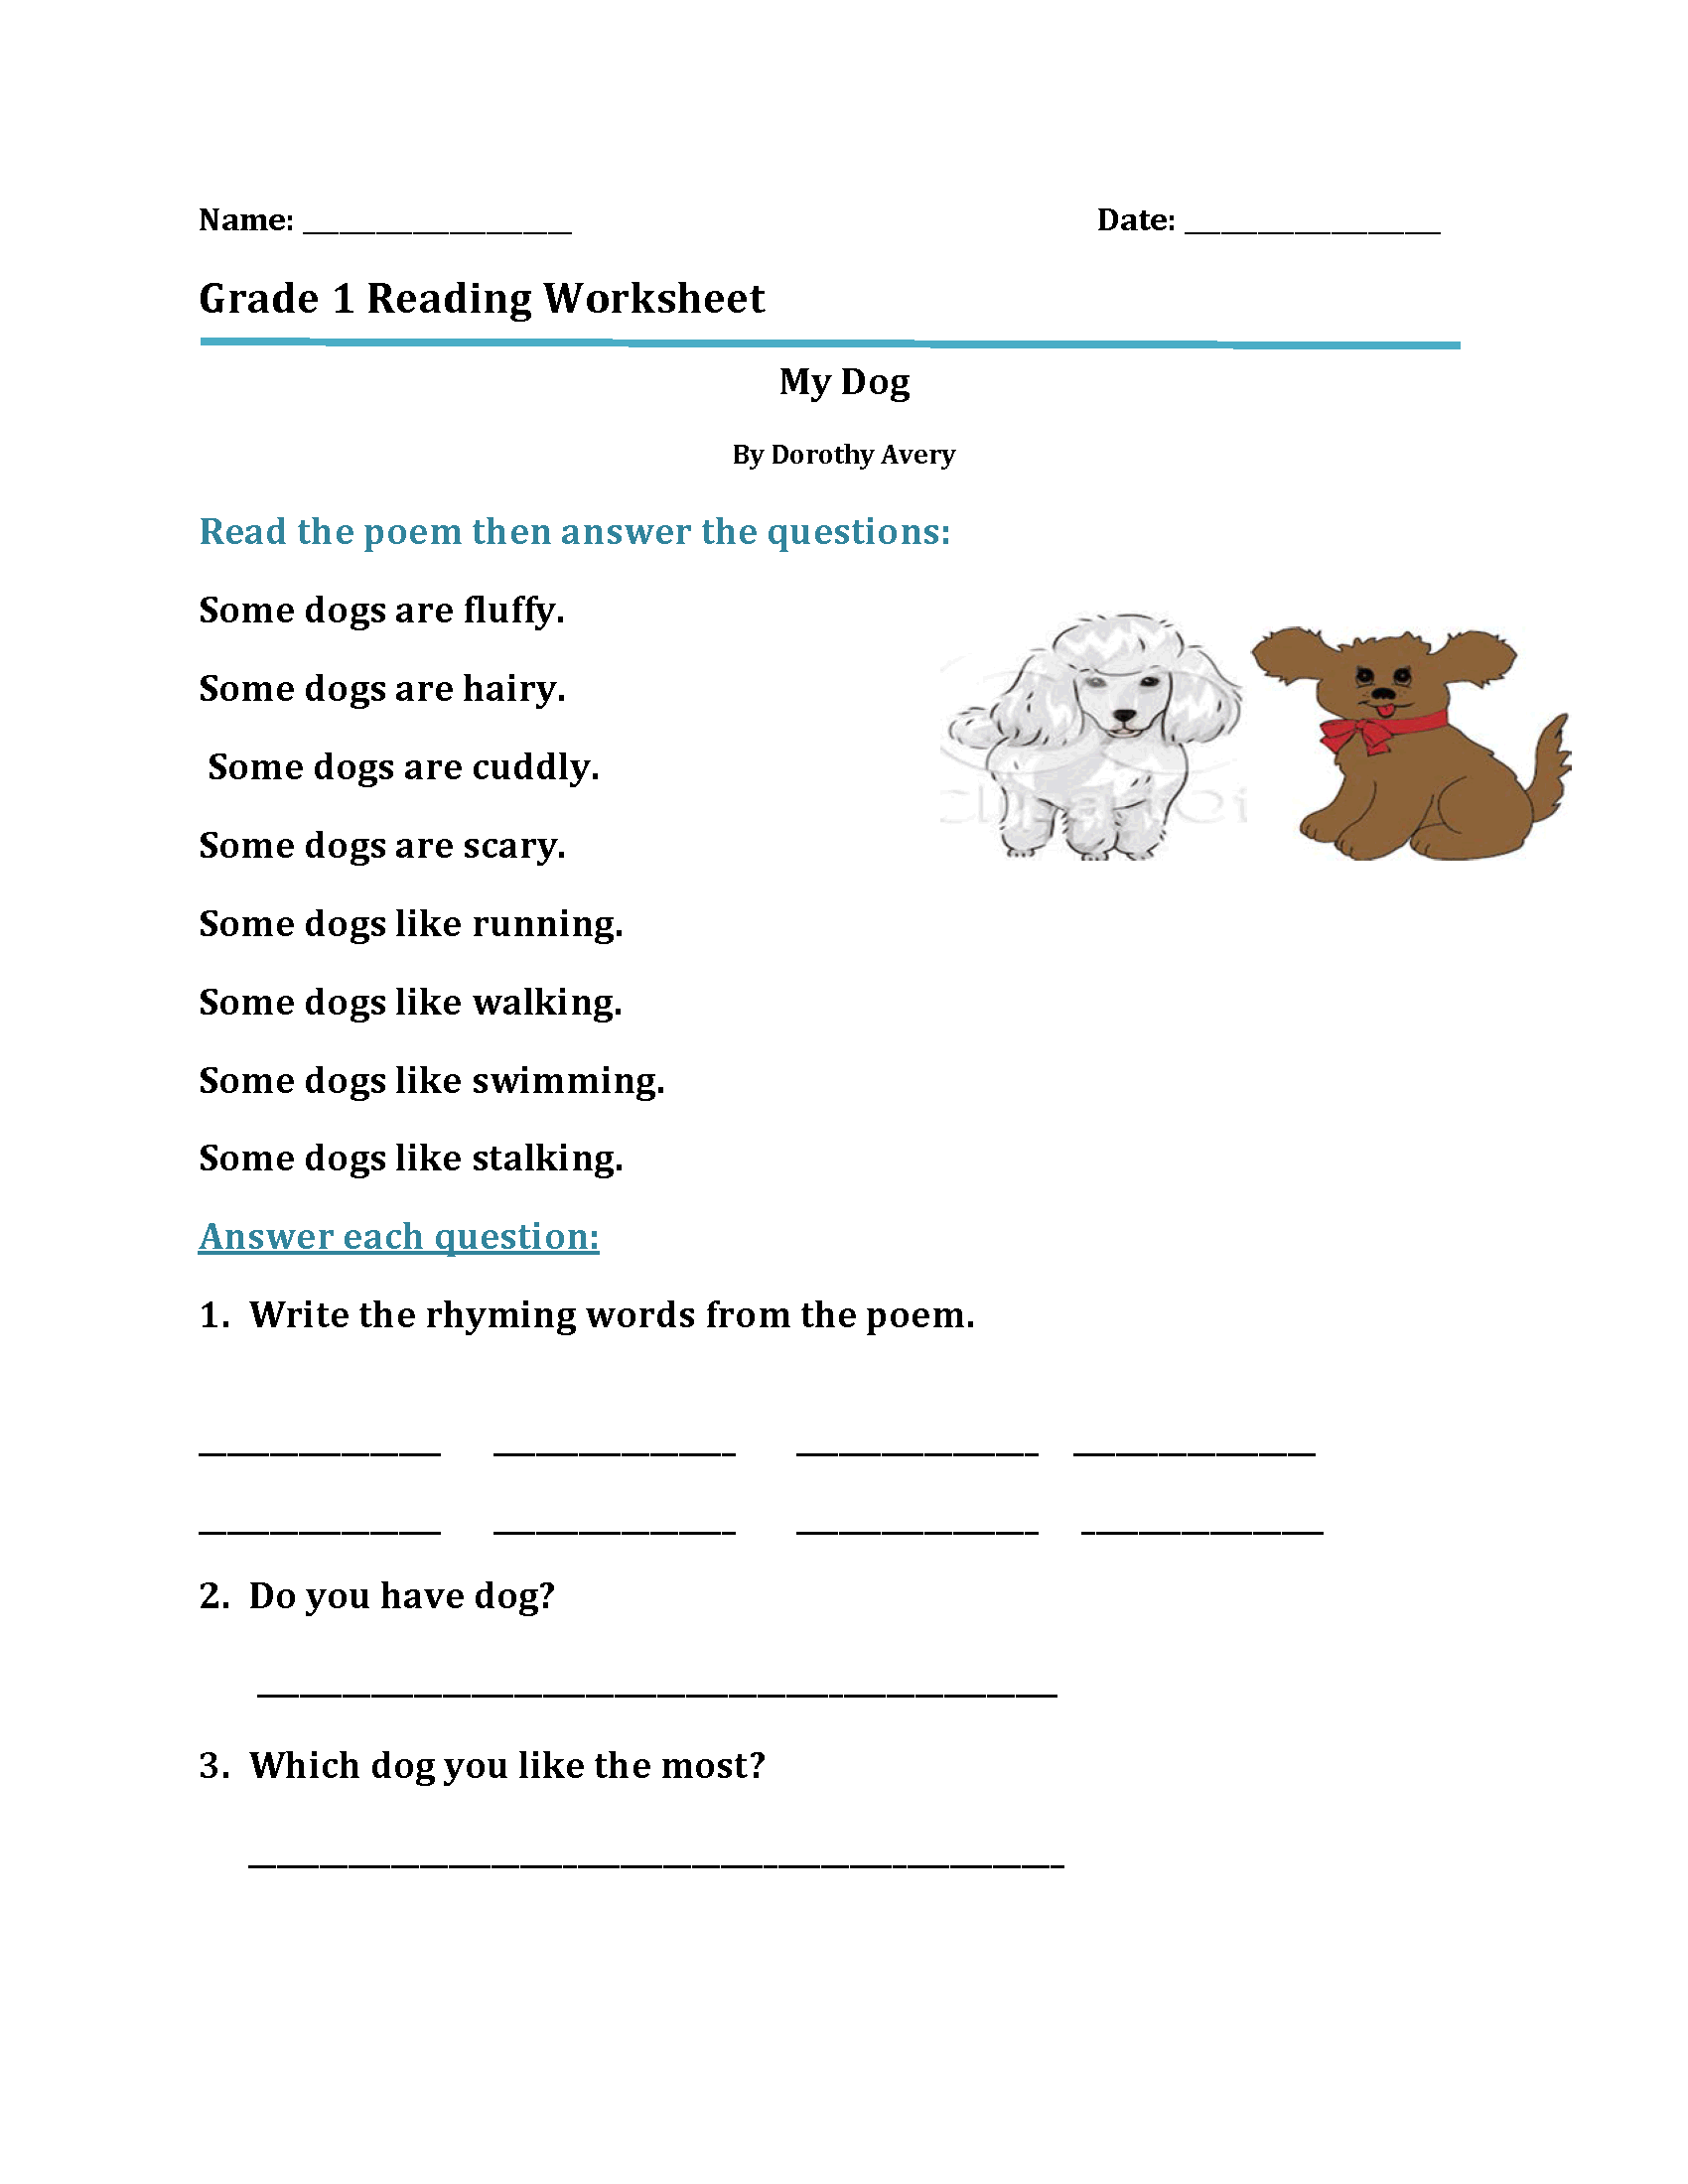 hight resolution of Printable Reading Worksheets for Grade 1   K5 Worksheets   Reading  worksheets